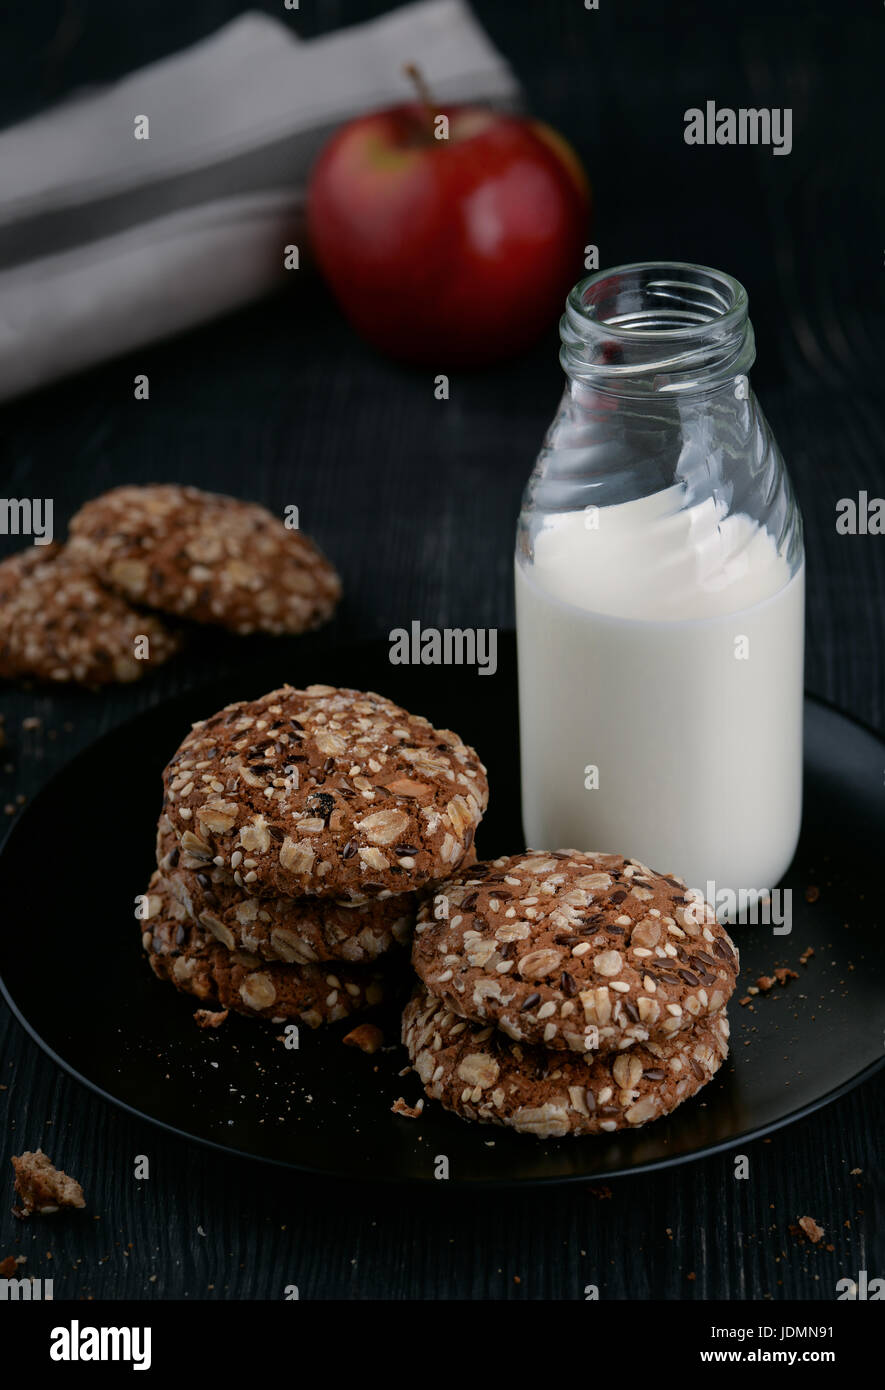 Still life with milk and homemade whole grain cookies - Stock Image